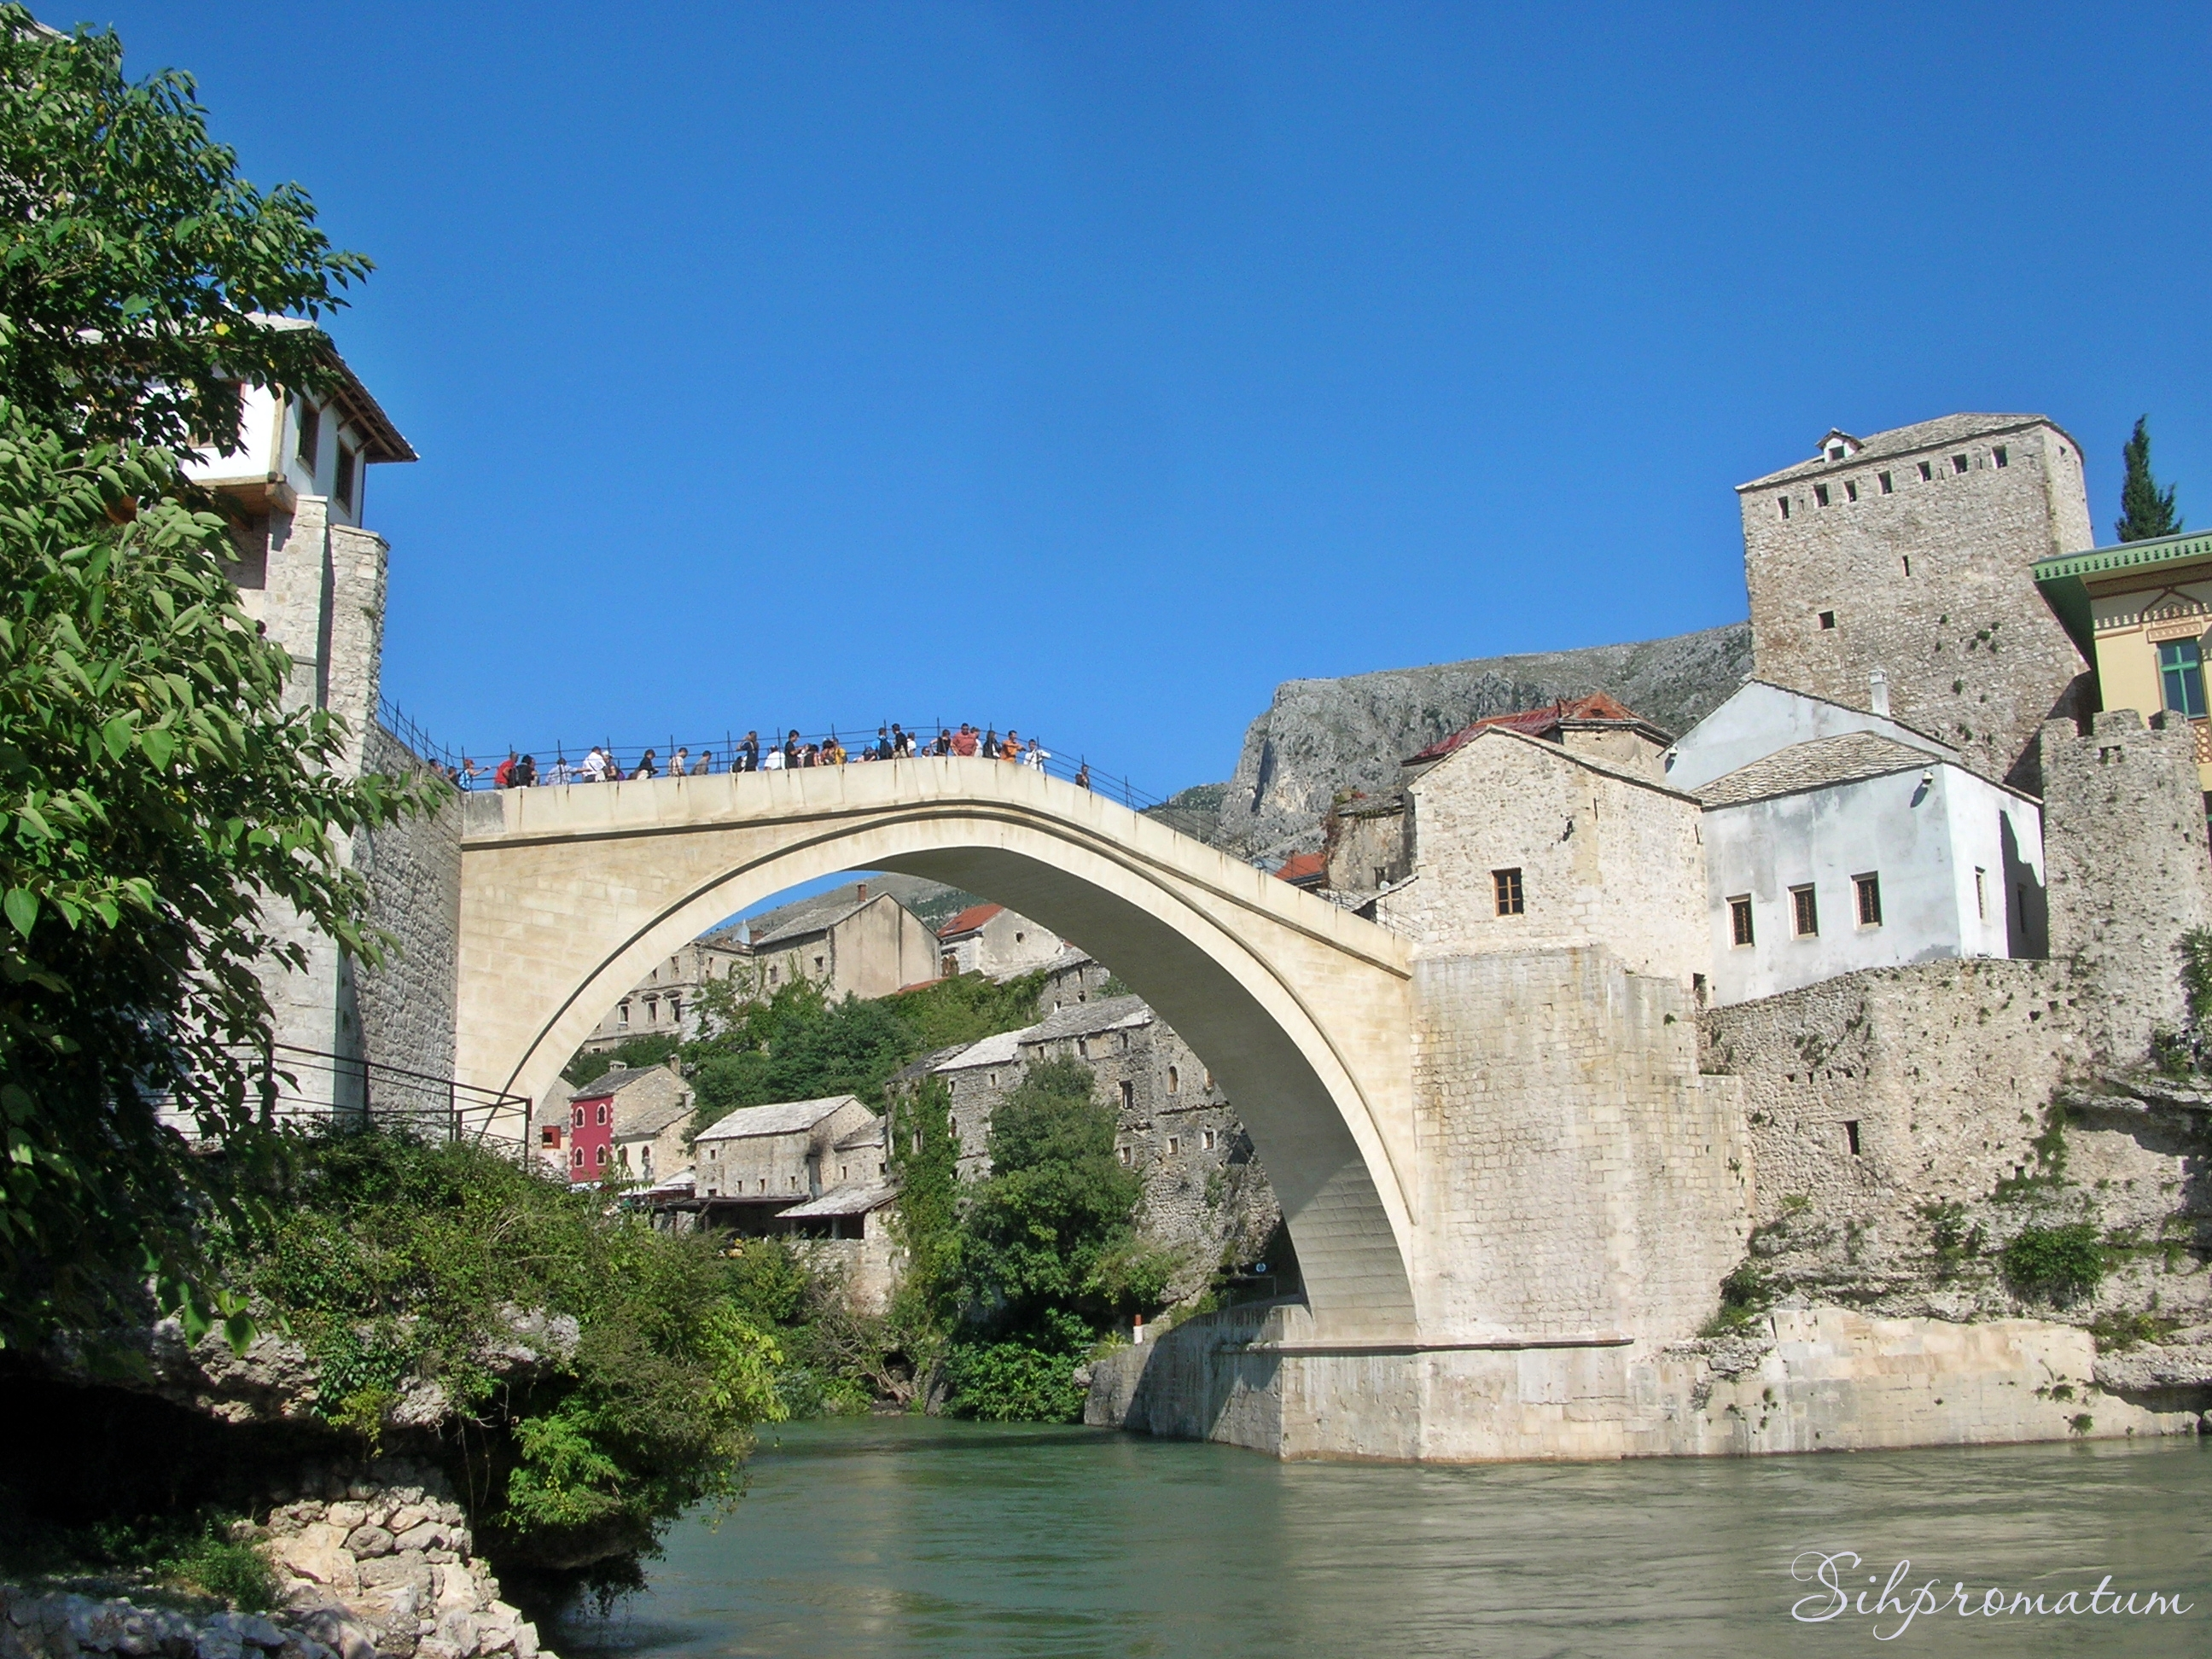 essay on bosnia Check out our top free essays on prejudice and discrimination bosnia to help you write your own essay.